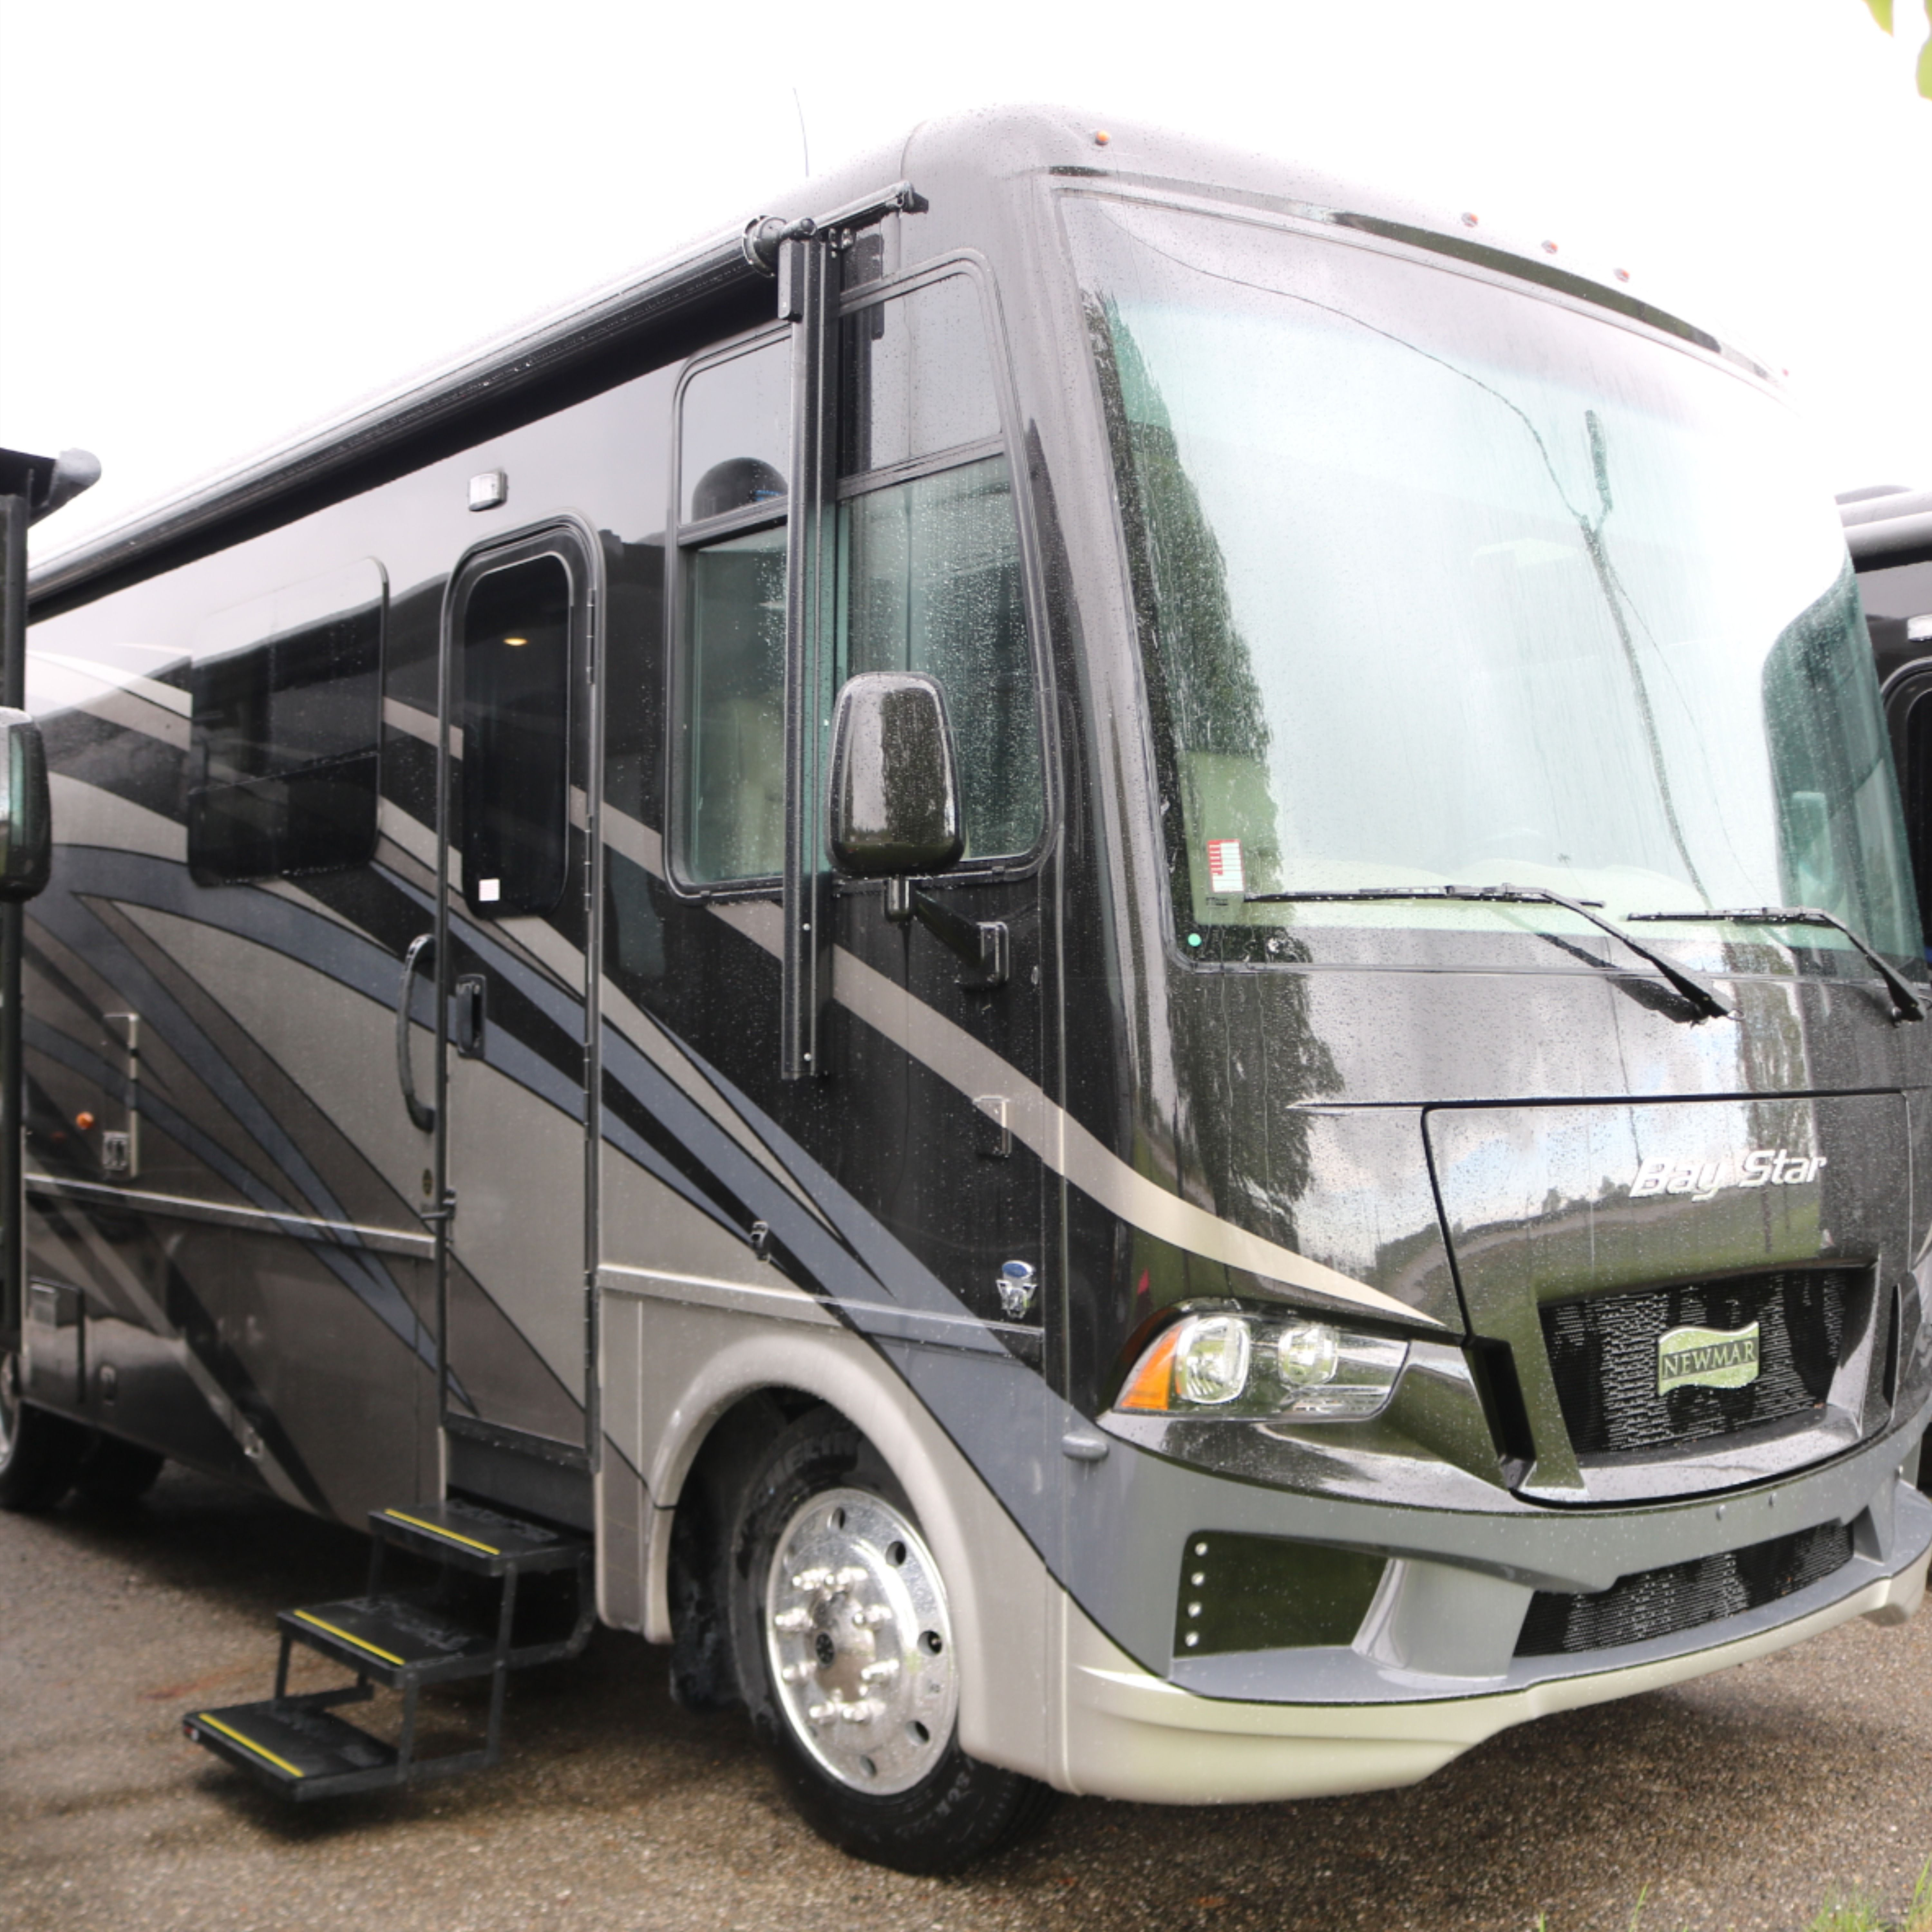 Pin on RVs and Motorhomes